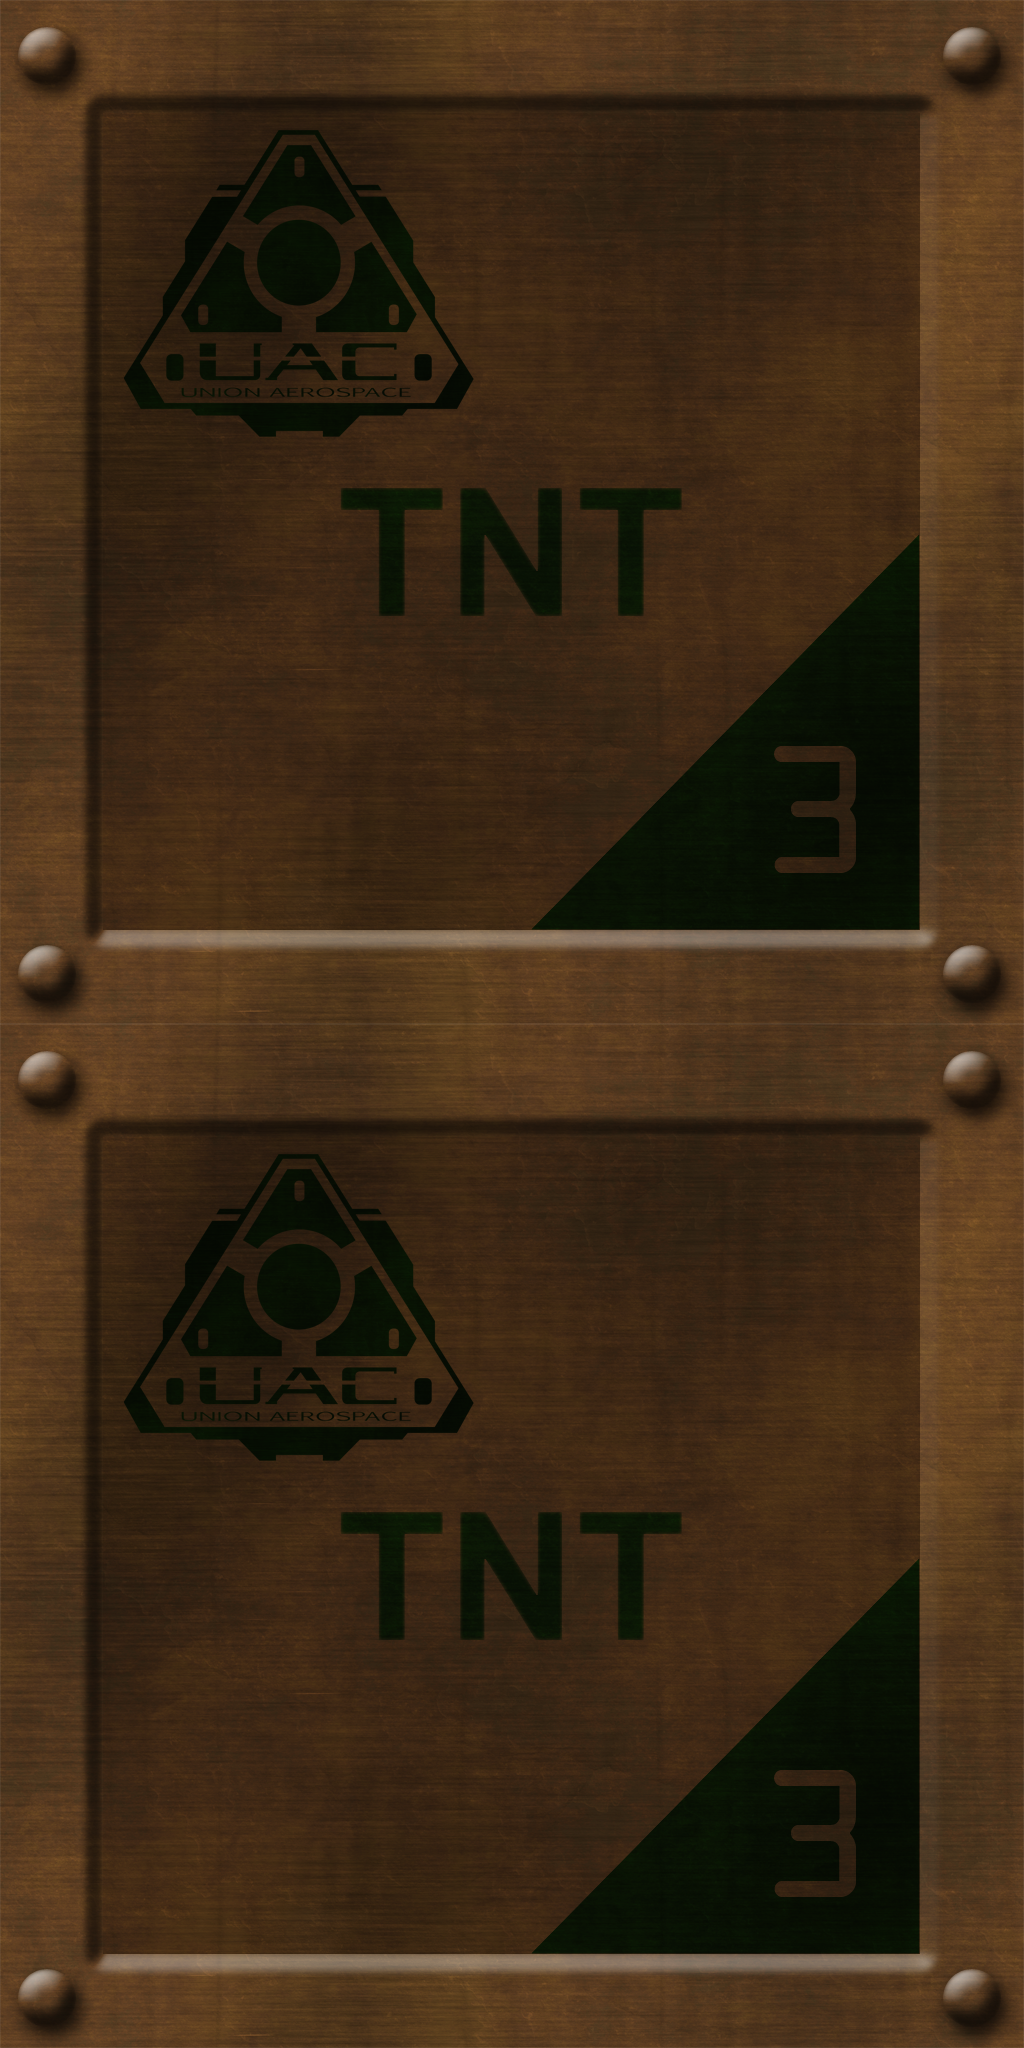 Brown TNT Crates by Hoover1979